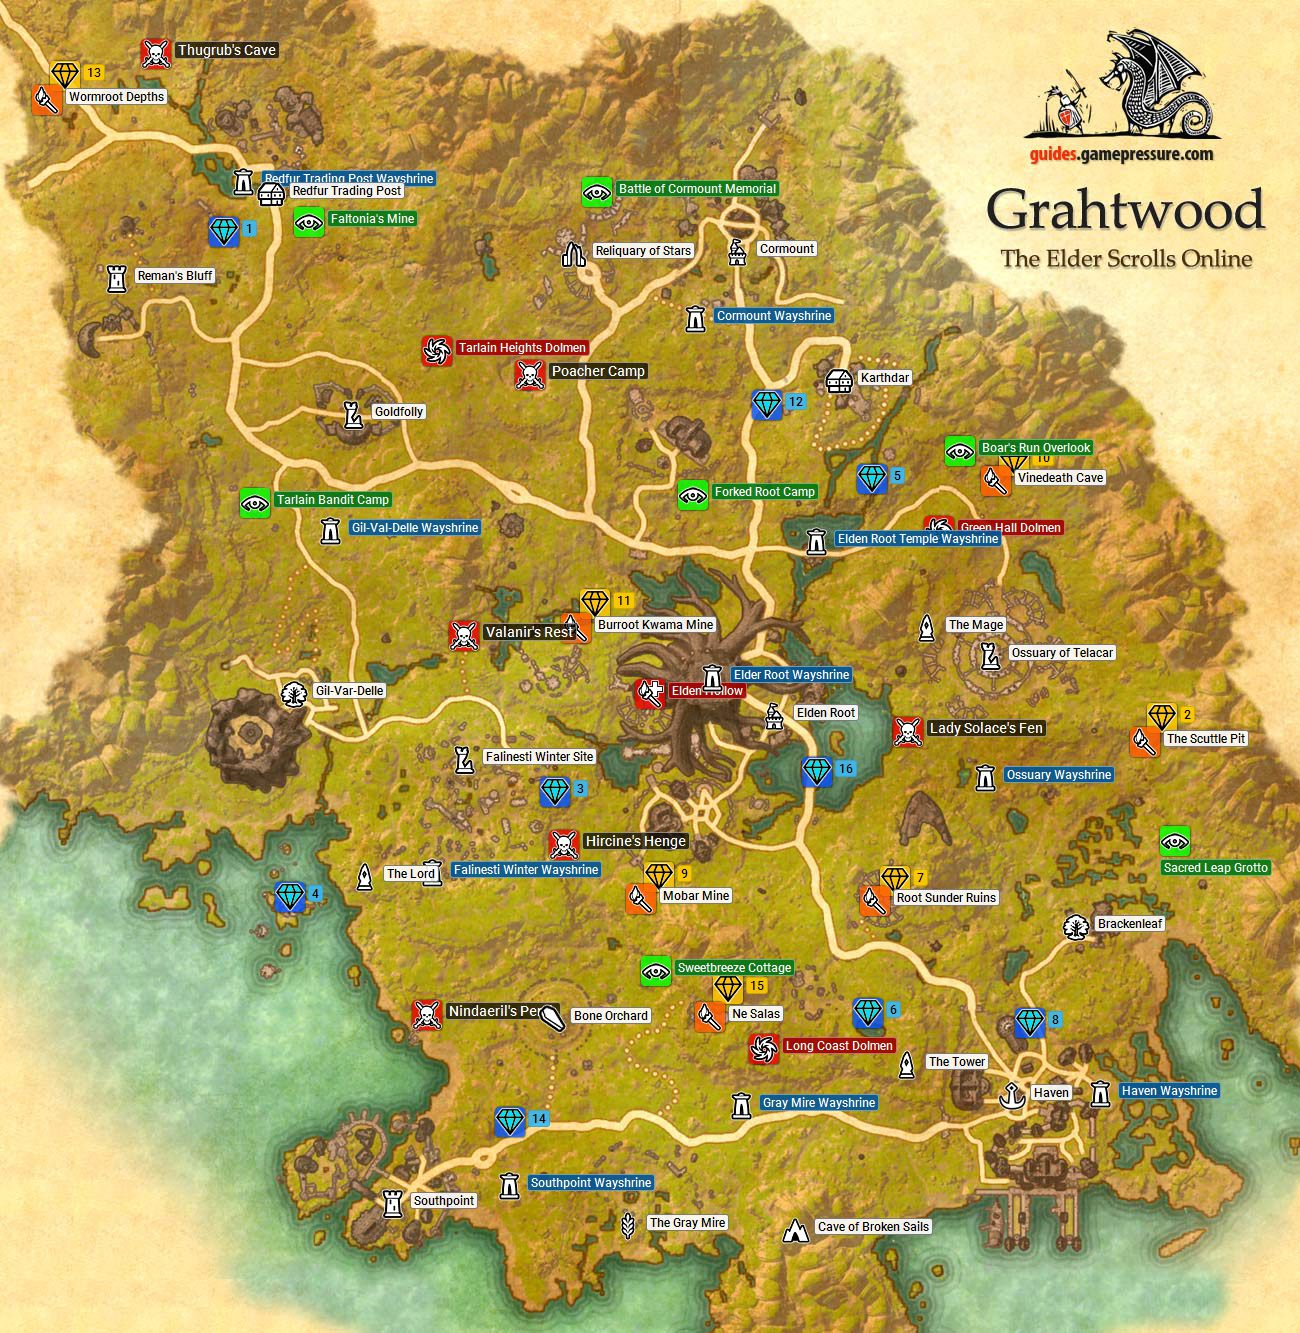 The Elder Scrolls Online - Grahtwood